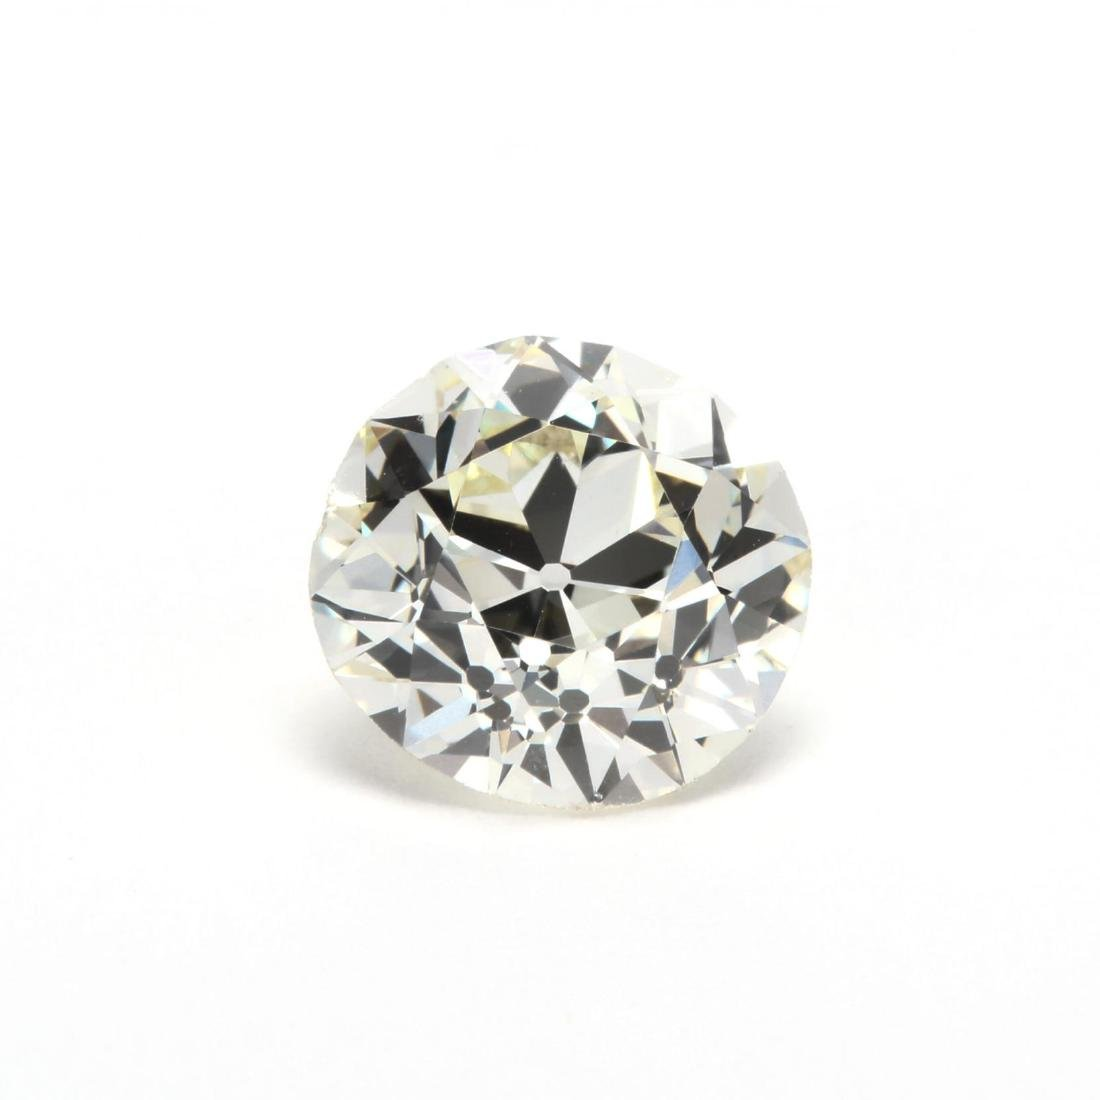 Unmounted Old European Cut Diamond with 14KT White Gold - 2